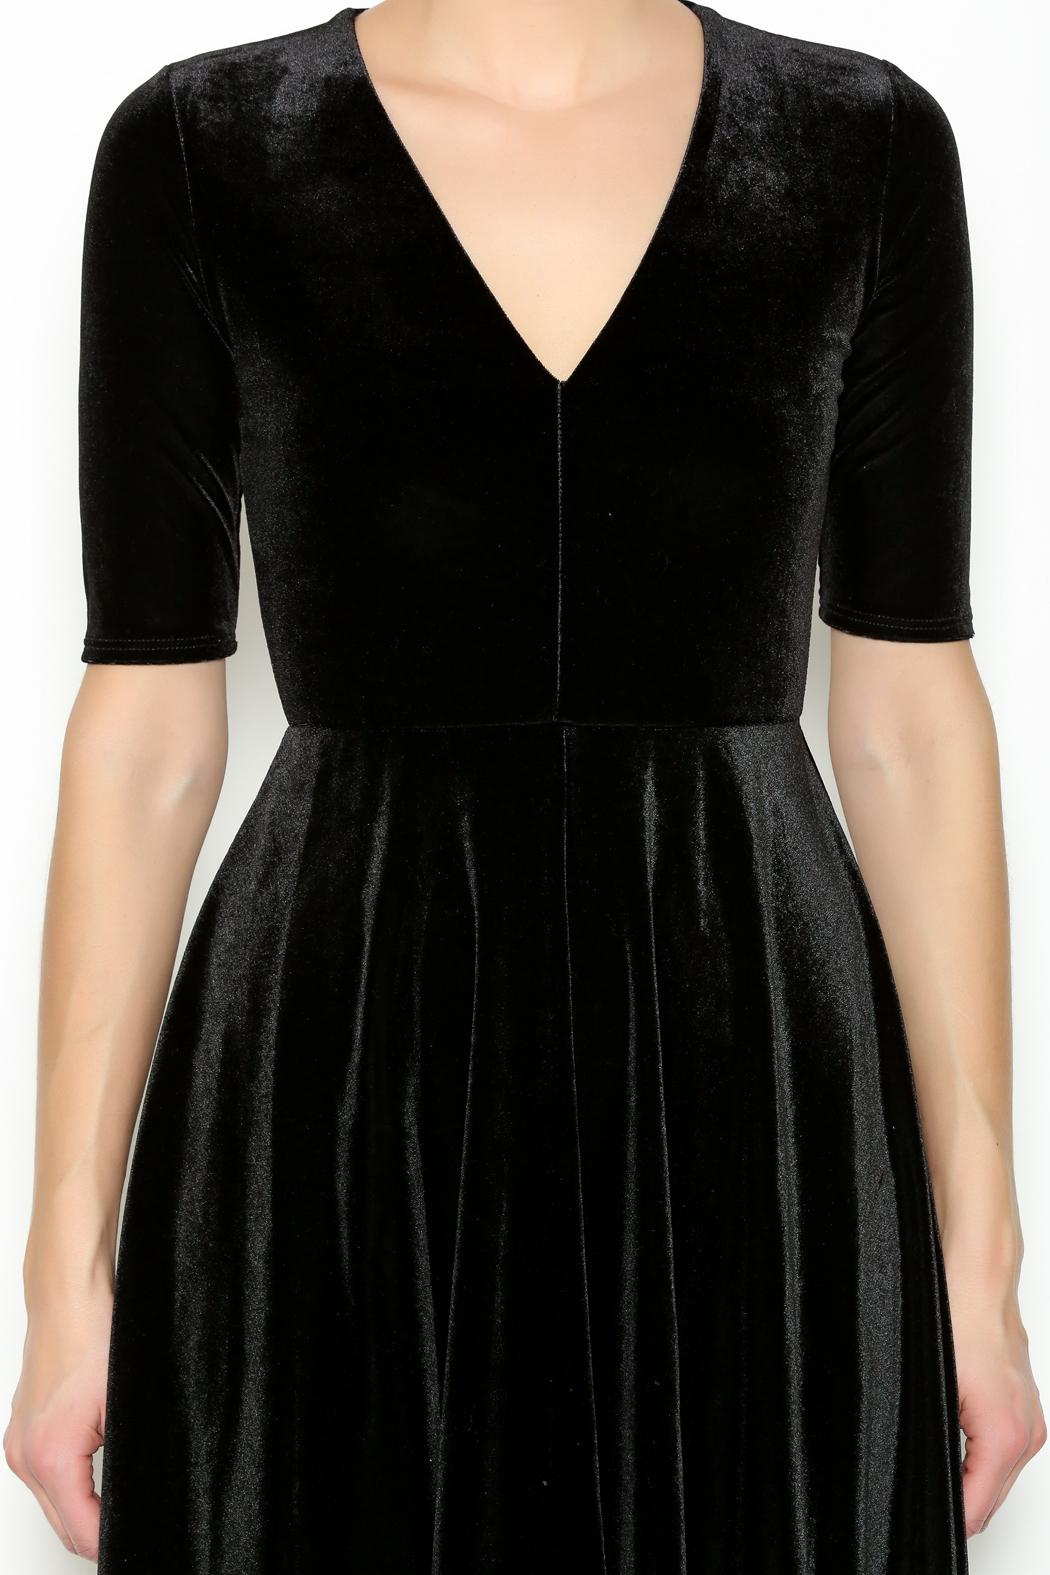 MaiTai Black Velvet Dress from Alaska by Apricot Lane - Anchorage u2014 Shoptiques